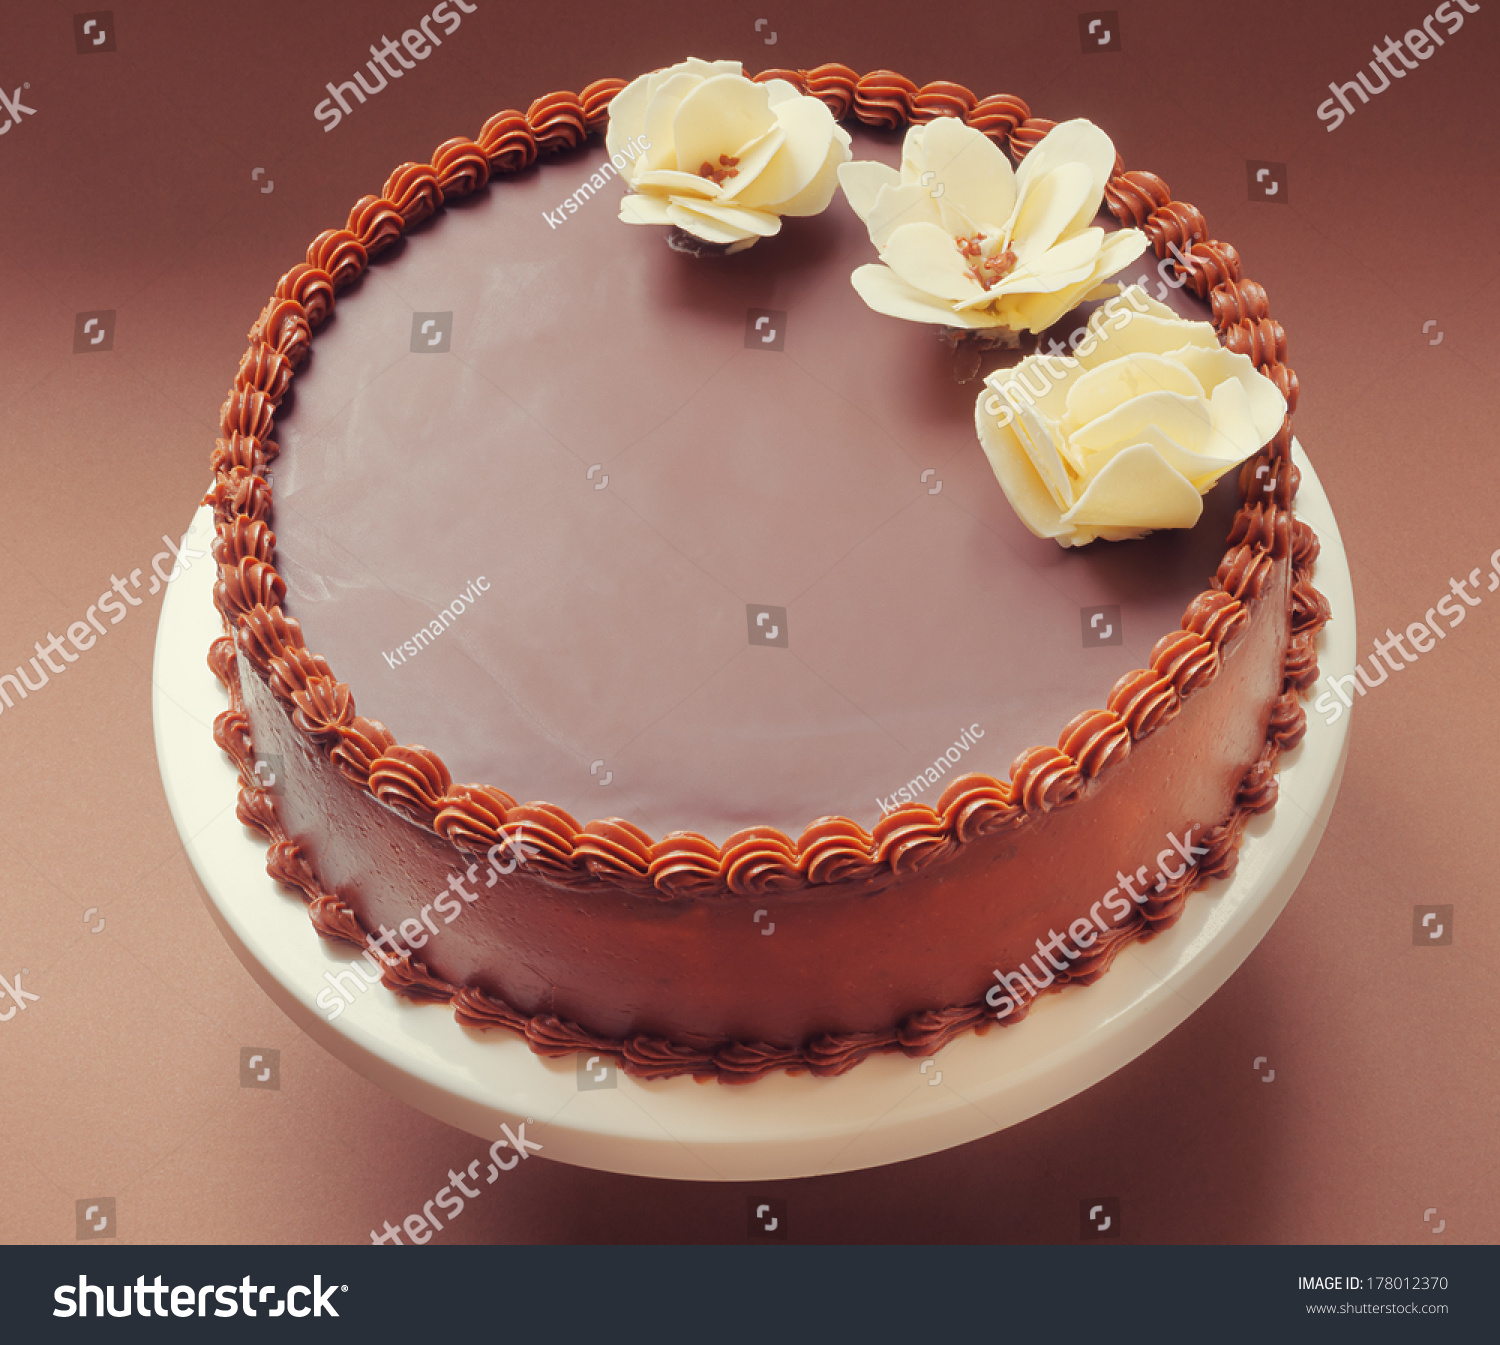 All chocolate birthday cake on brown stock photo edit now all chocolate birthday cake on brown background decorated with yellow flowers on top izmirmasajfo